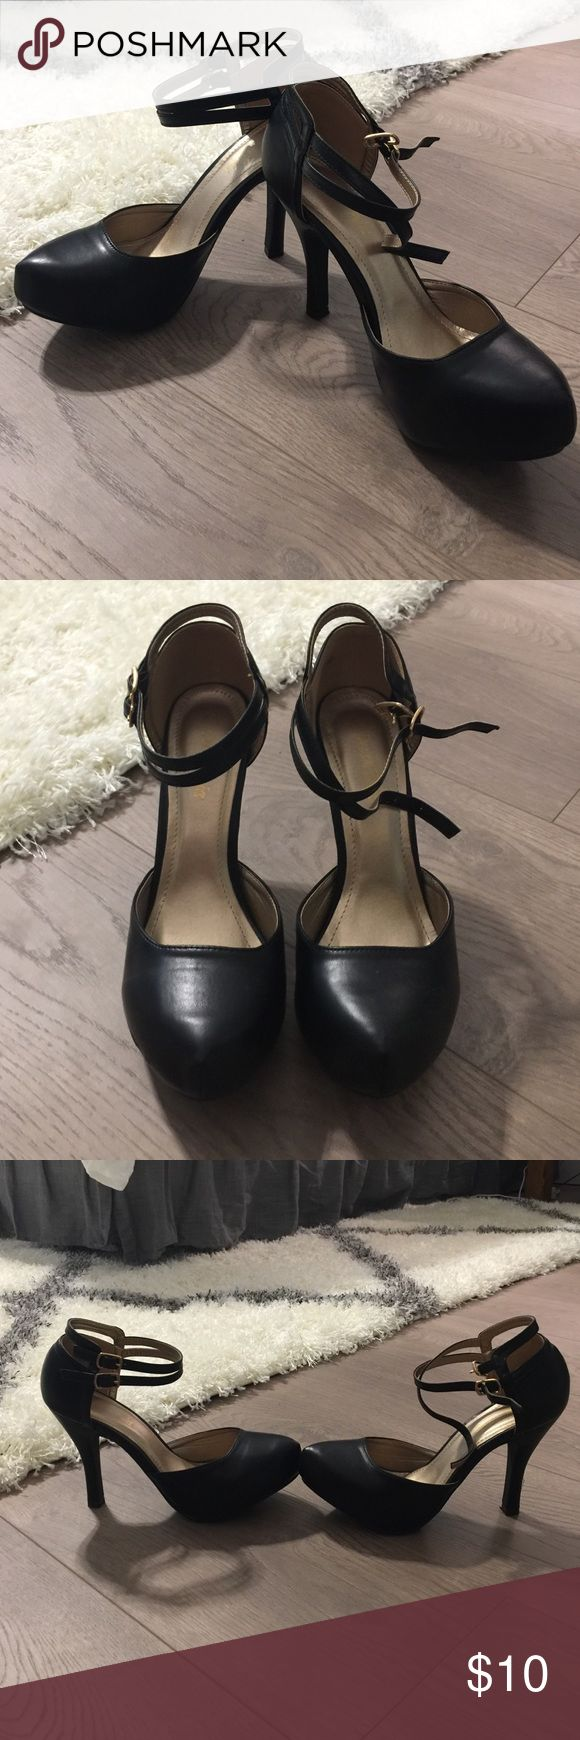 Black Mary Jane Heels 8.5- worn once- comfy and cute! From Amazon dinah pairs Shoes Heels